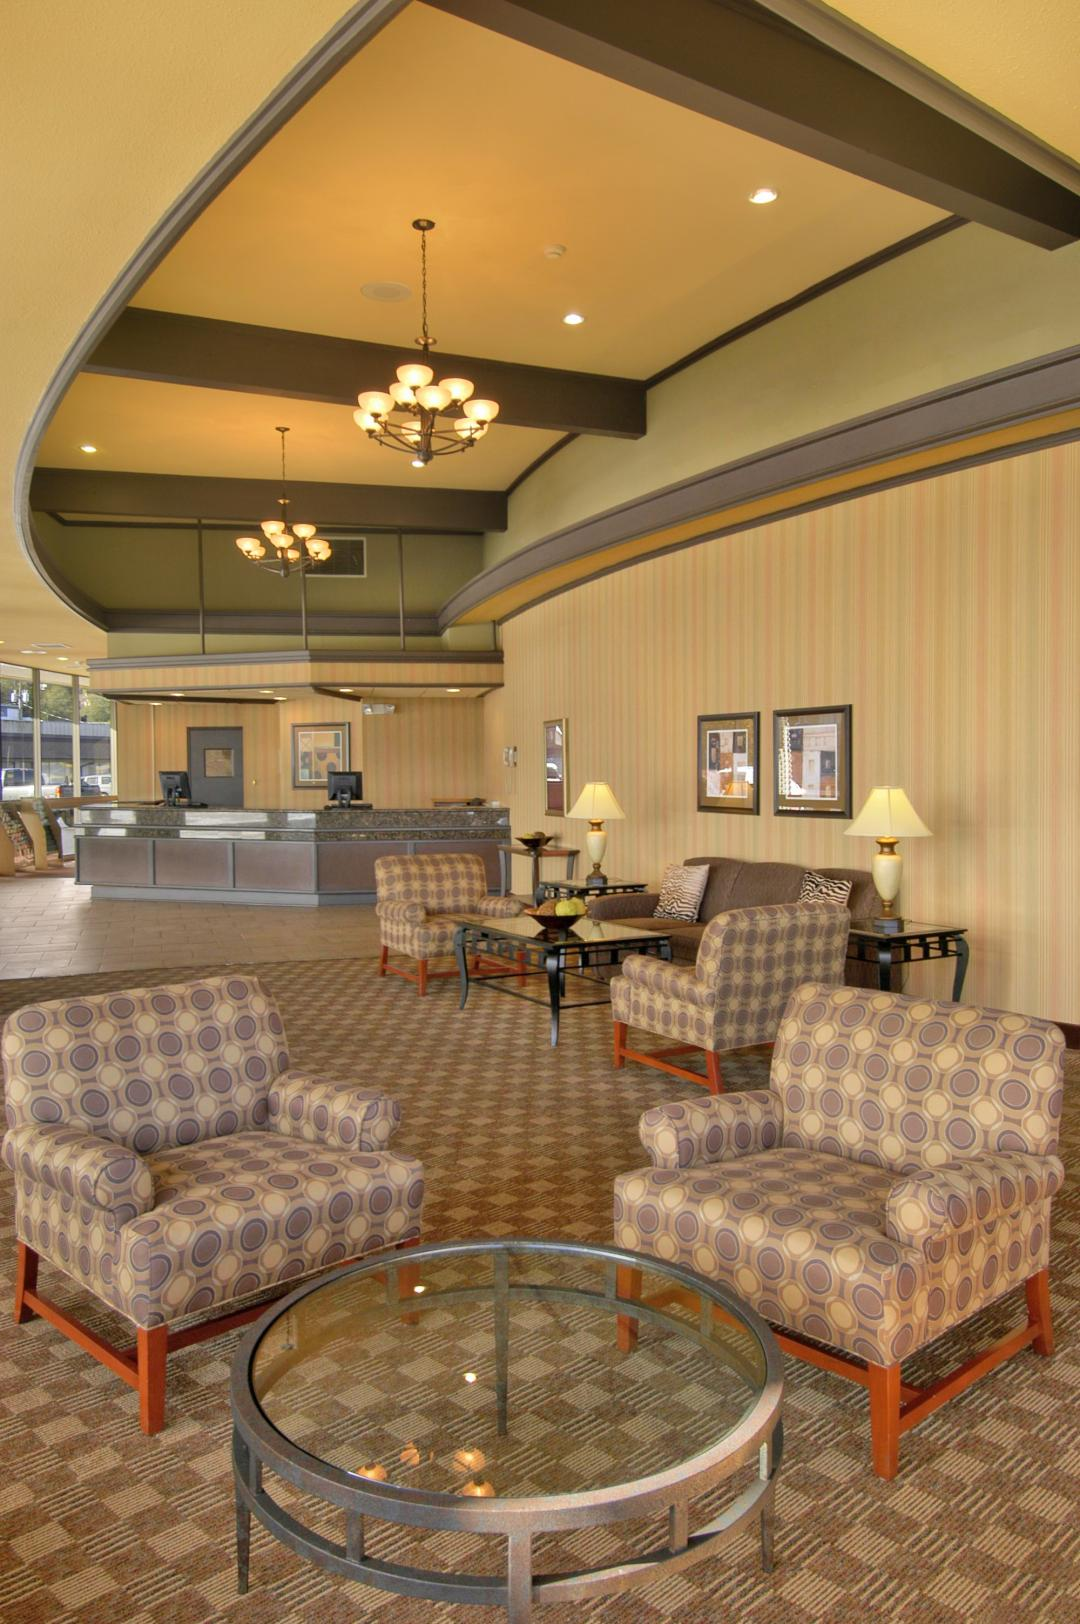 Lobby with high vaulted ceilings